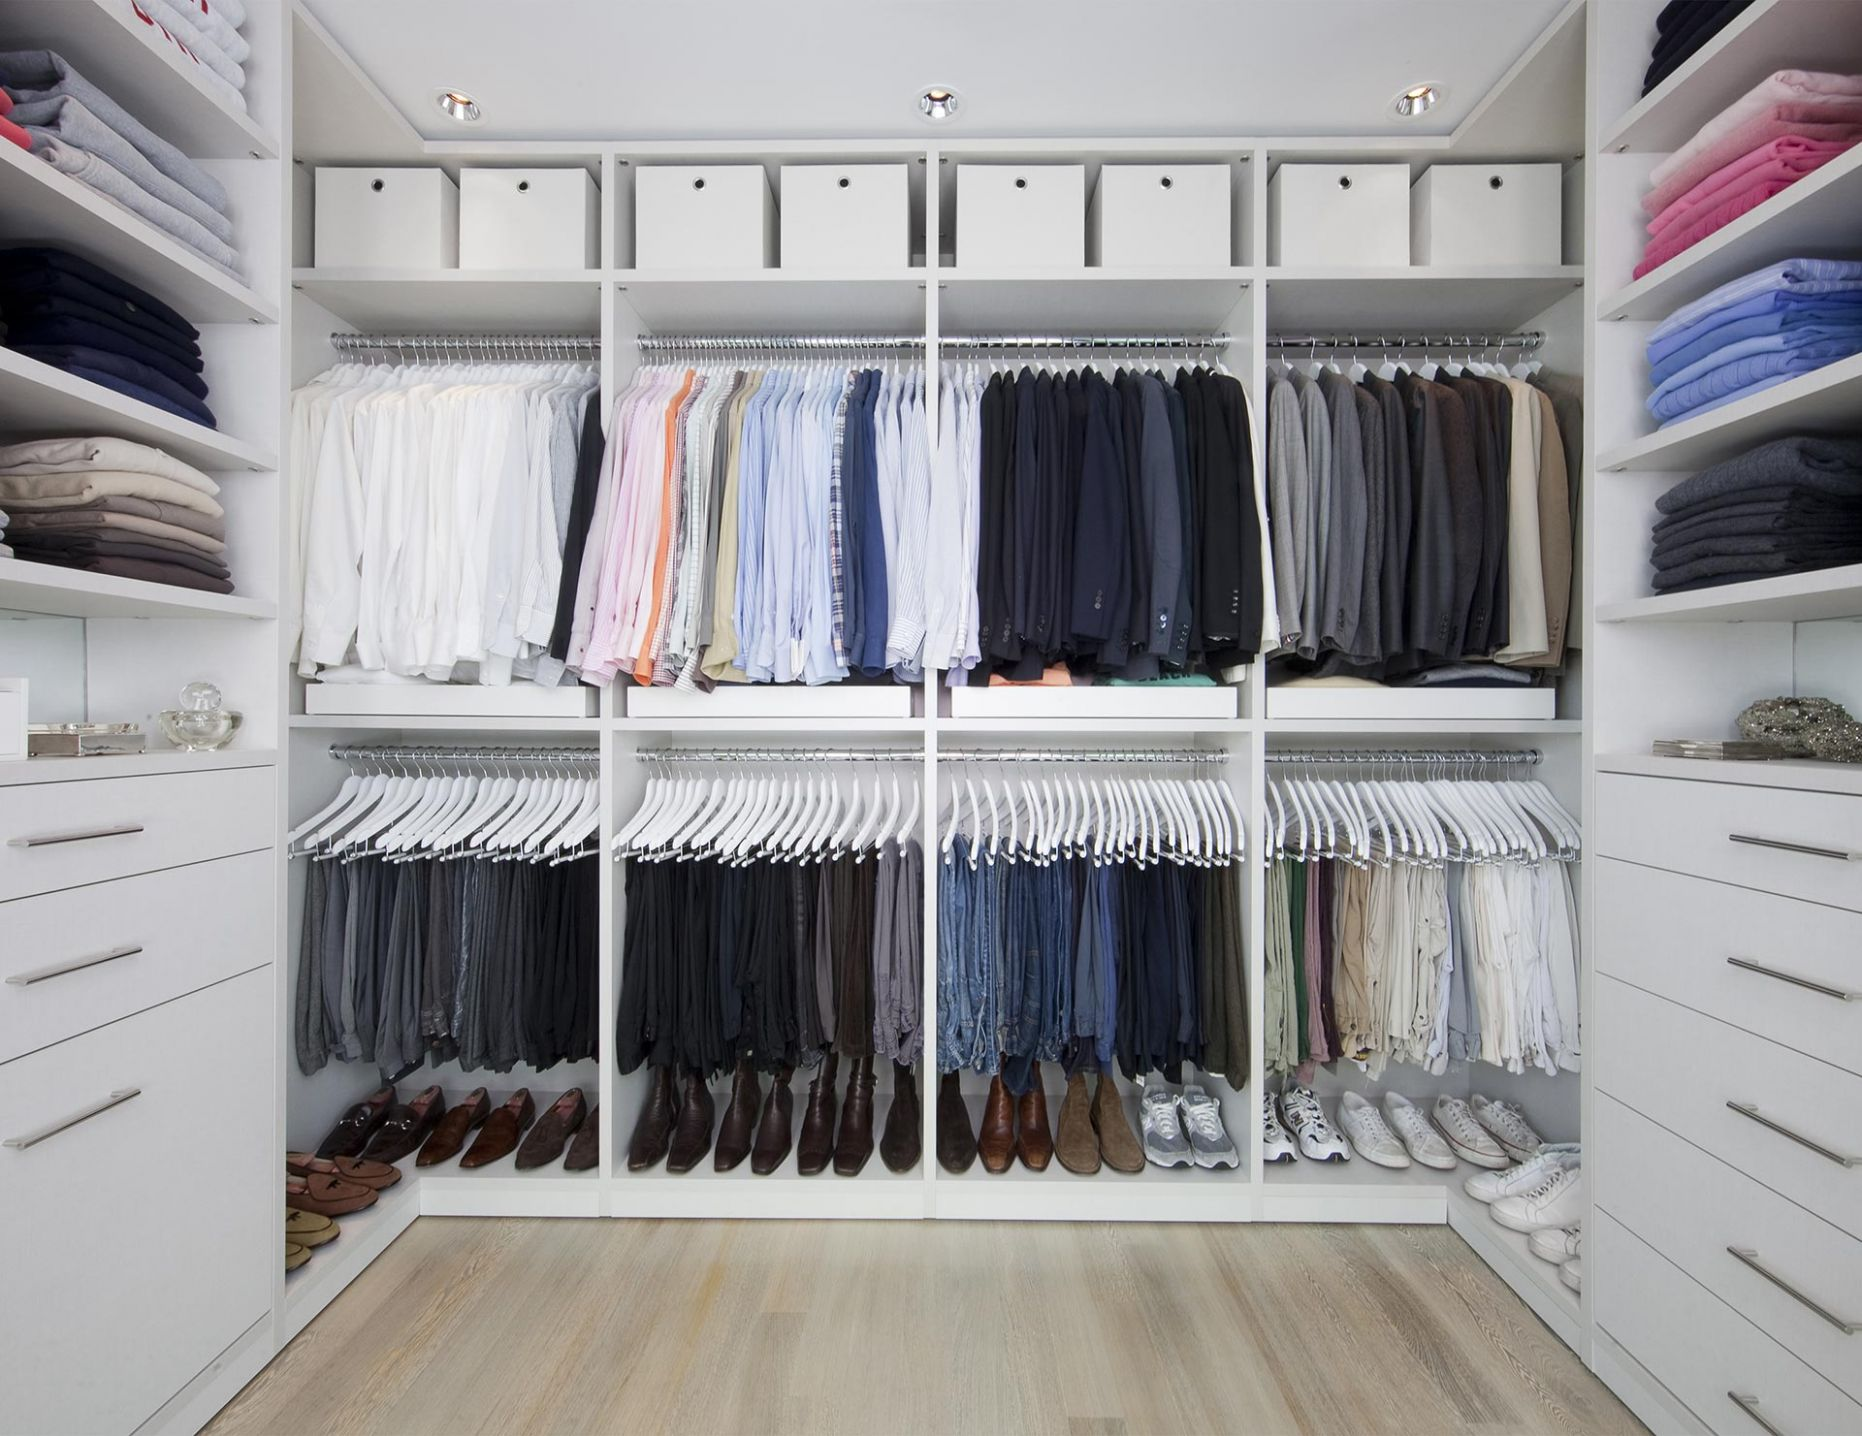 Walk In Closet Systems | Walk-In Closet Design Ideas | California ...